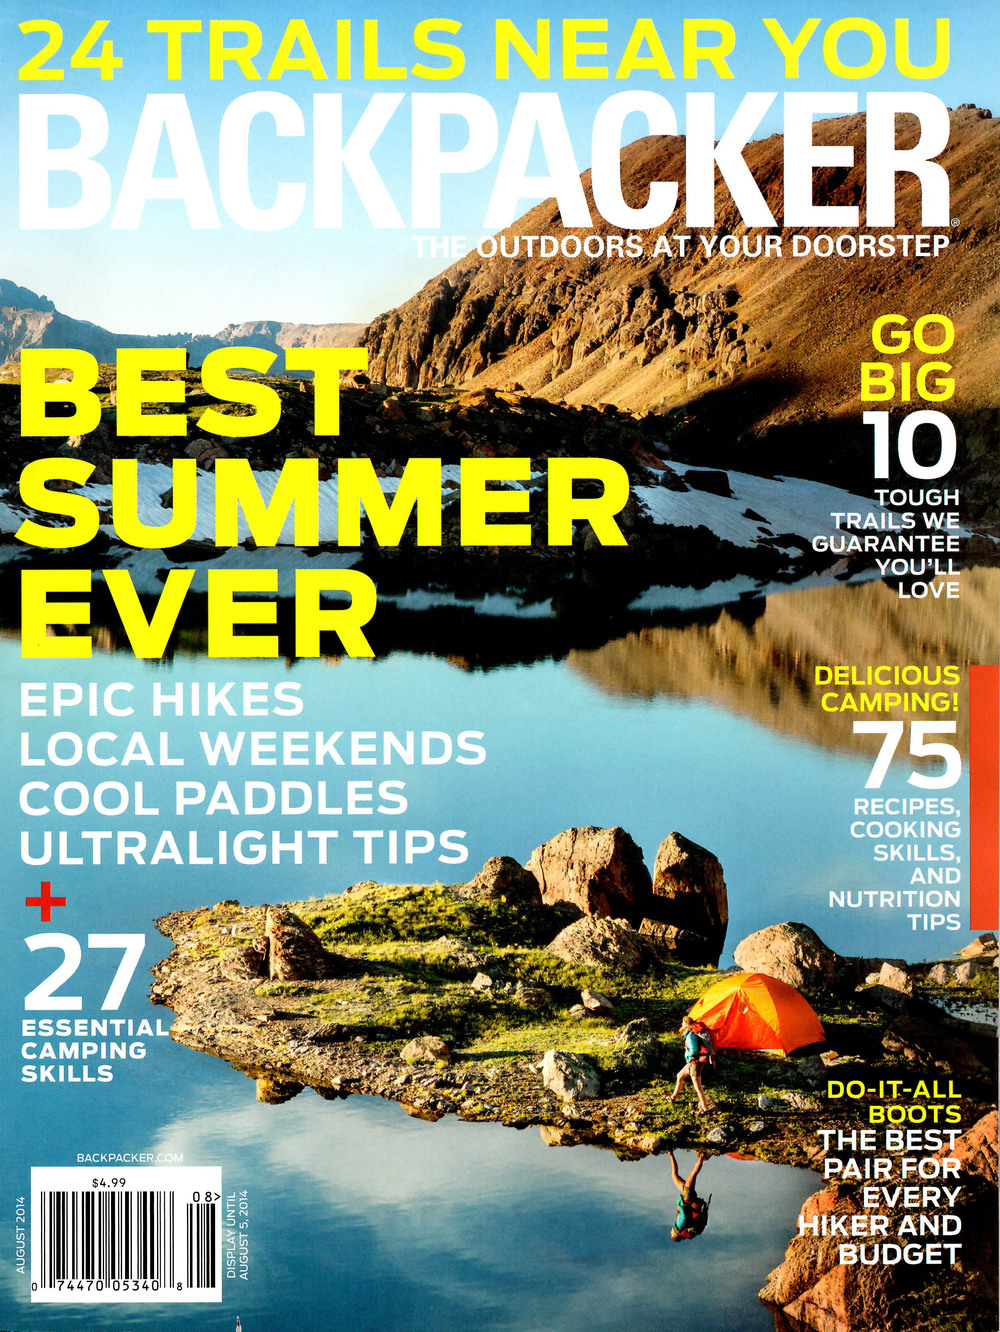 North Manitou Island BACKPACKER magazine - August 2014